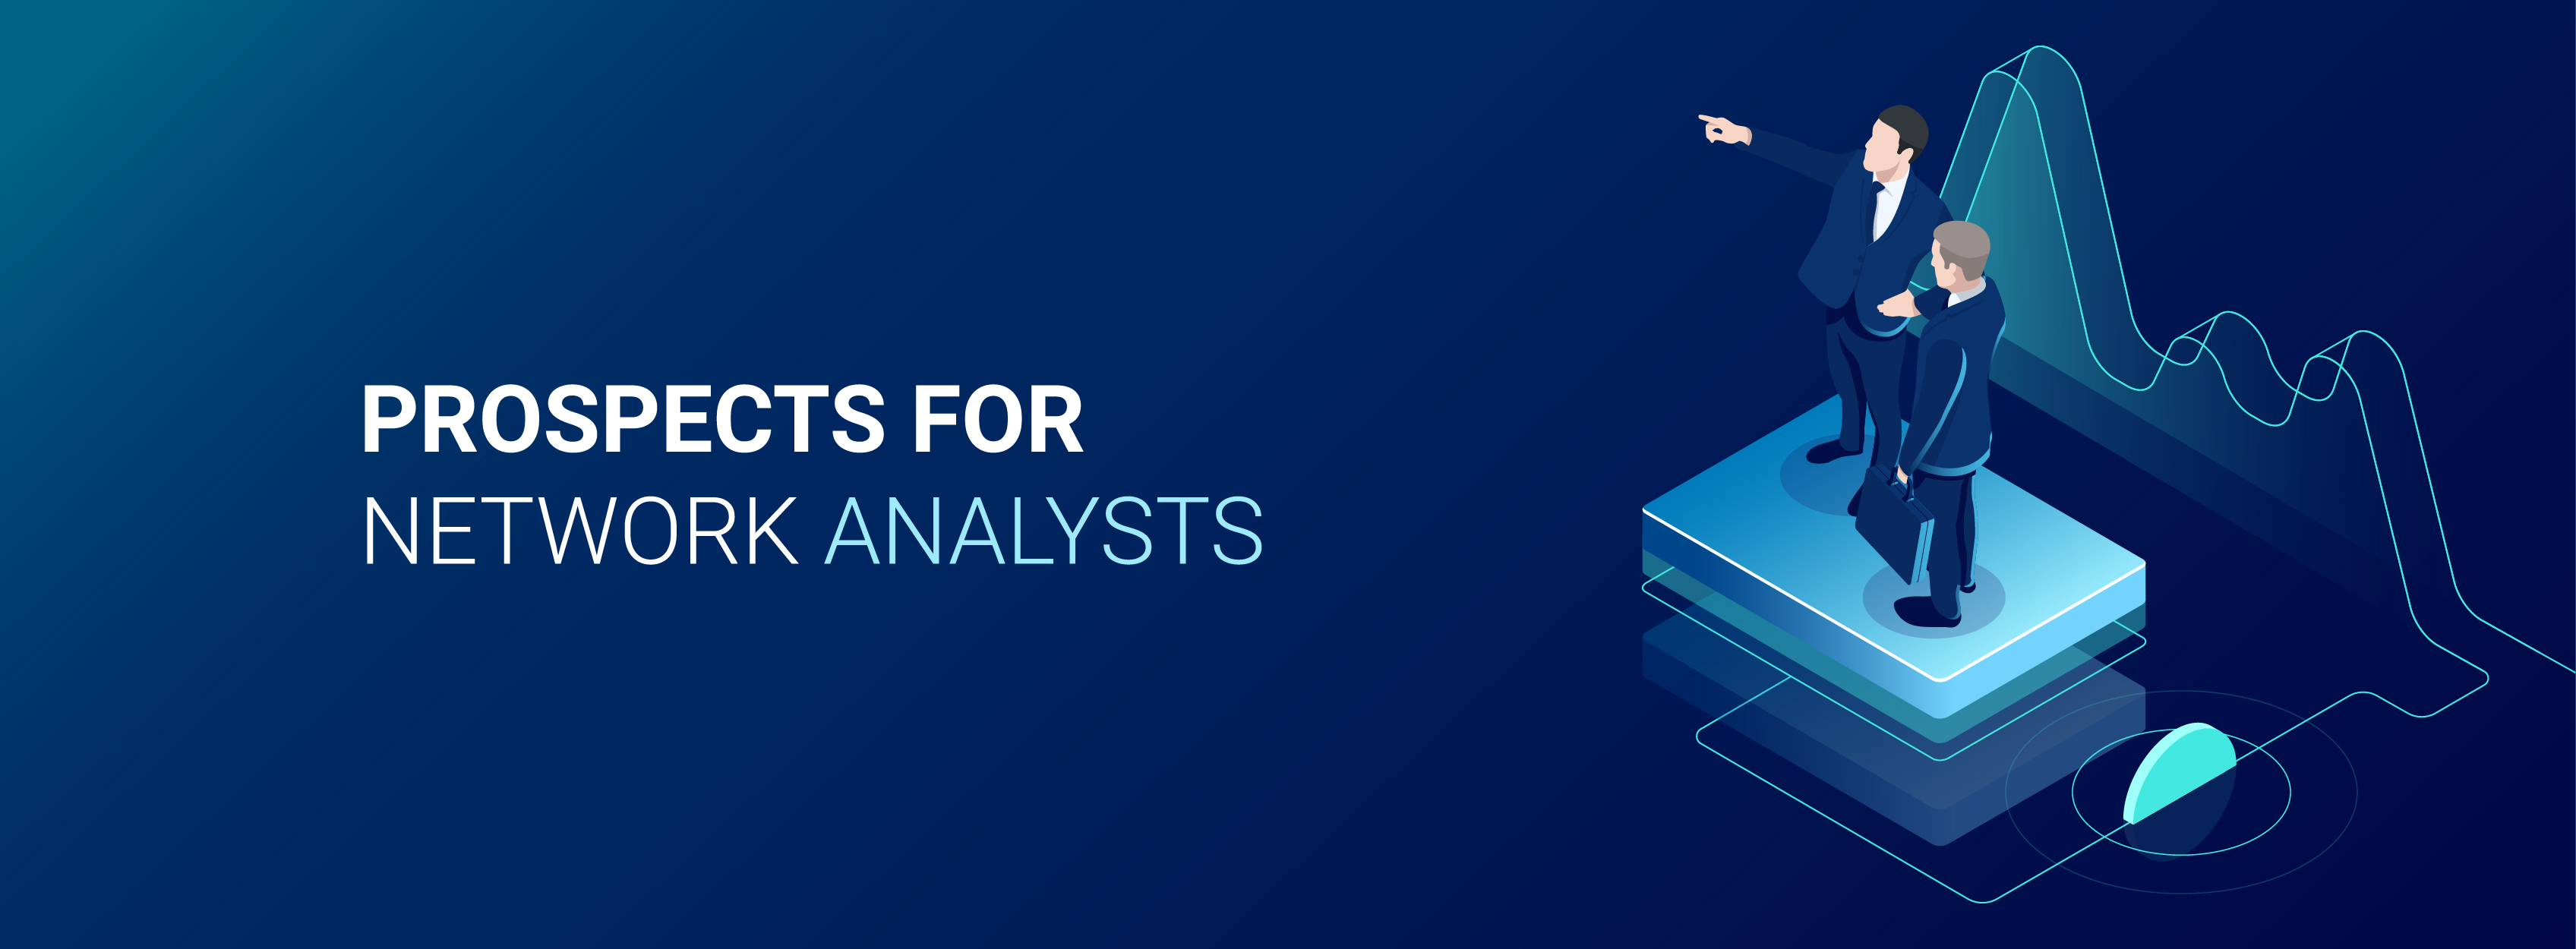 Network Analyst Prospects for Network Analysts